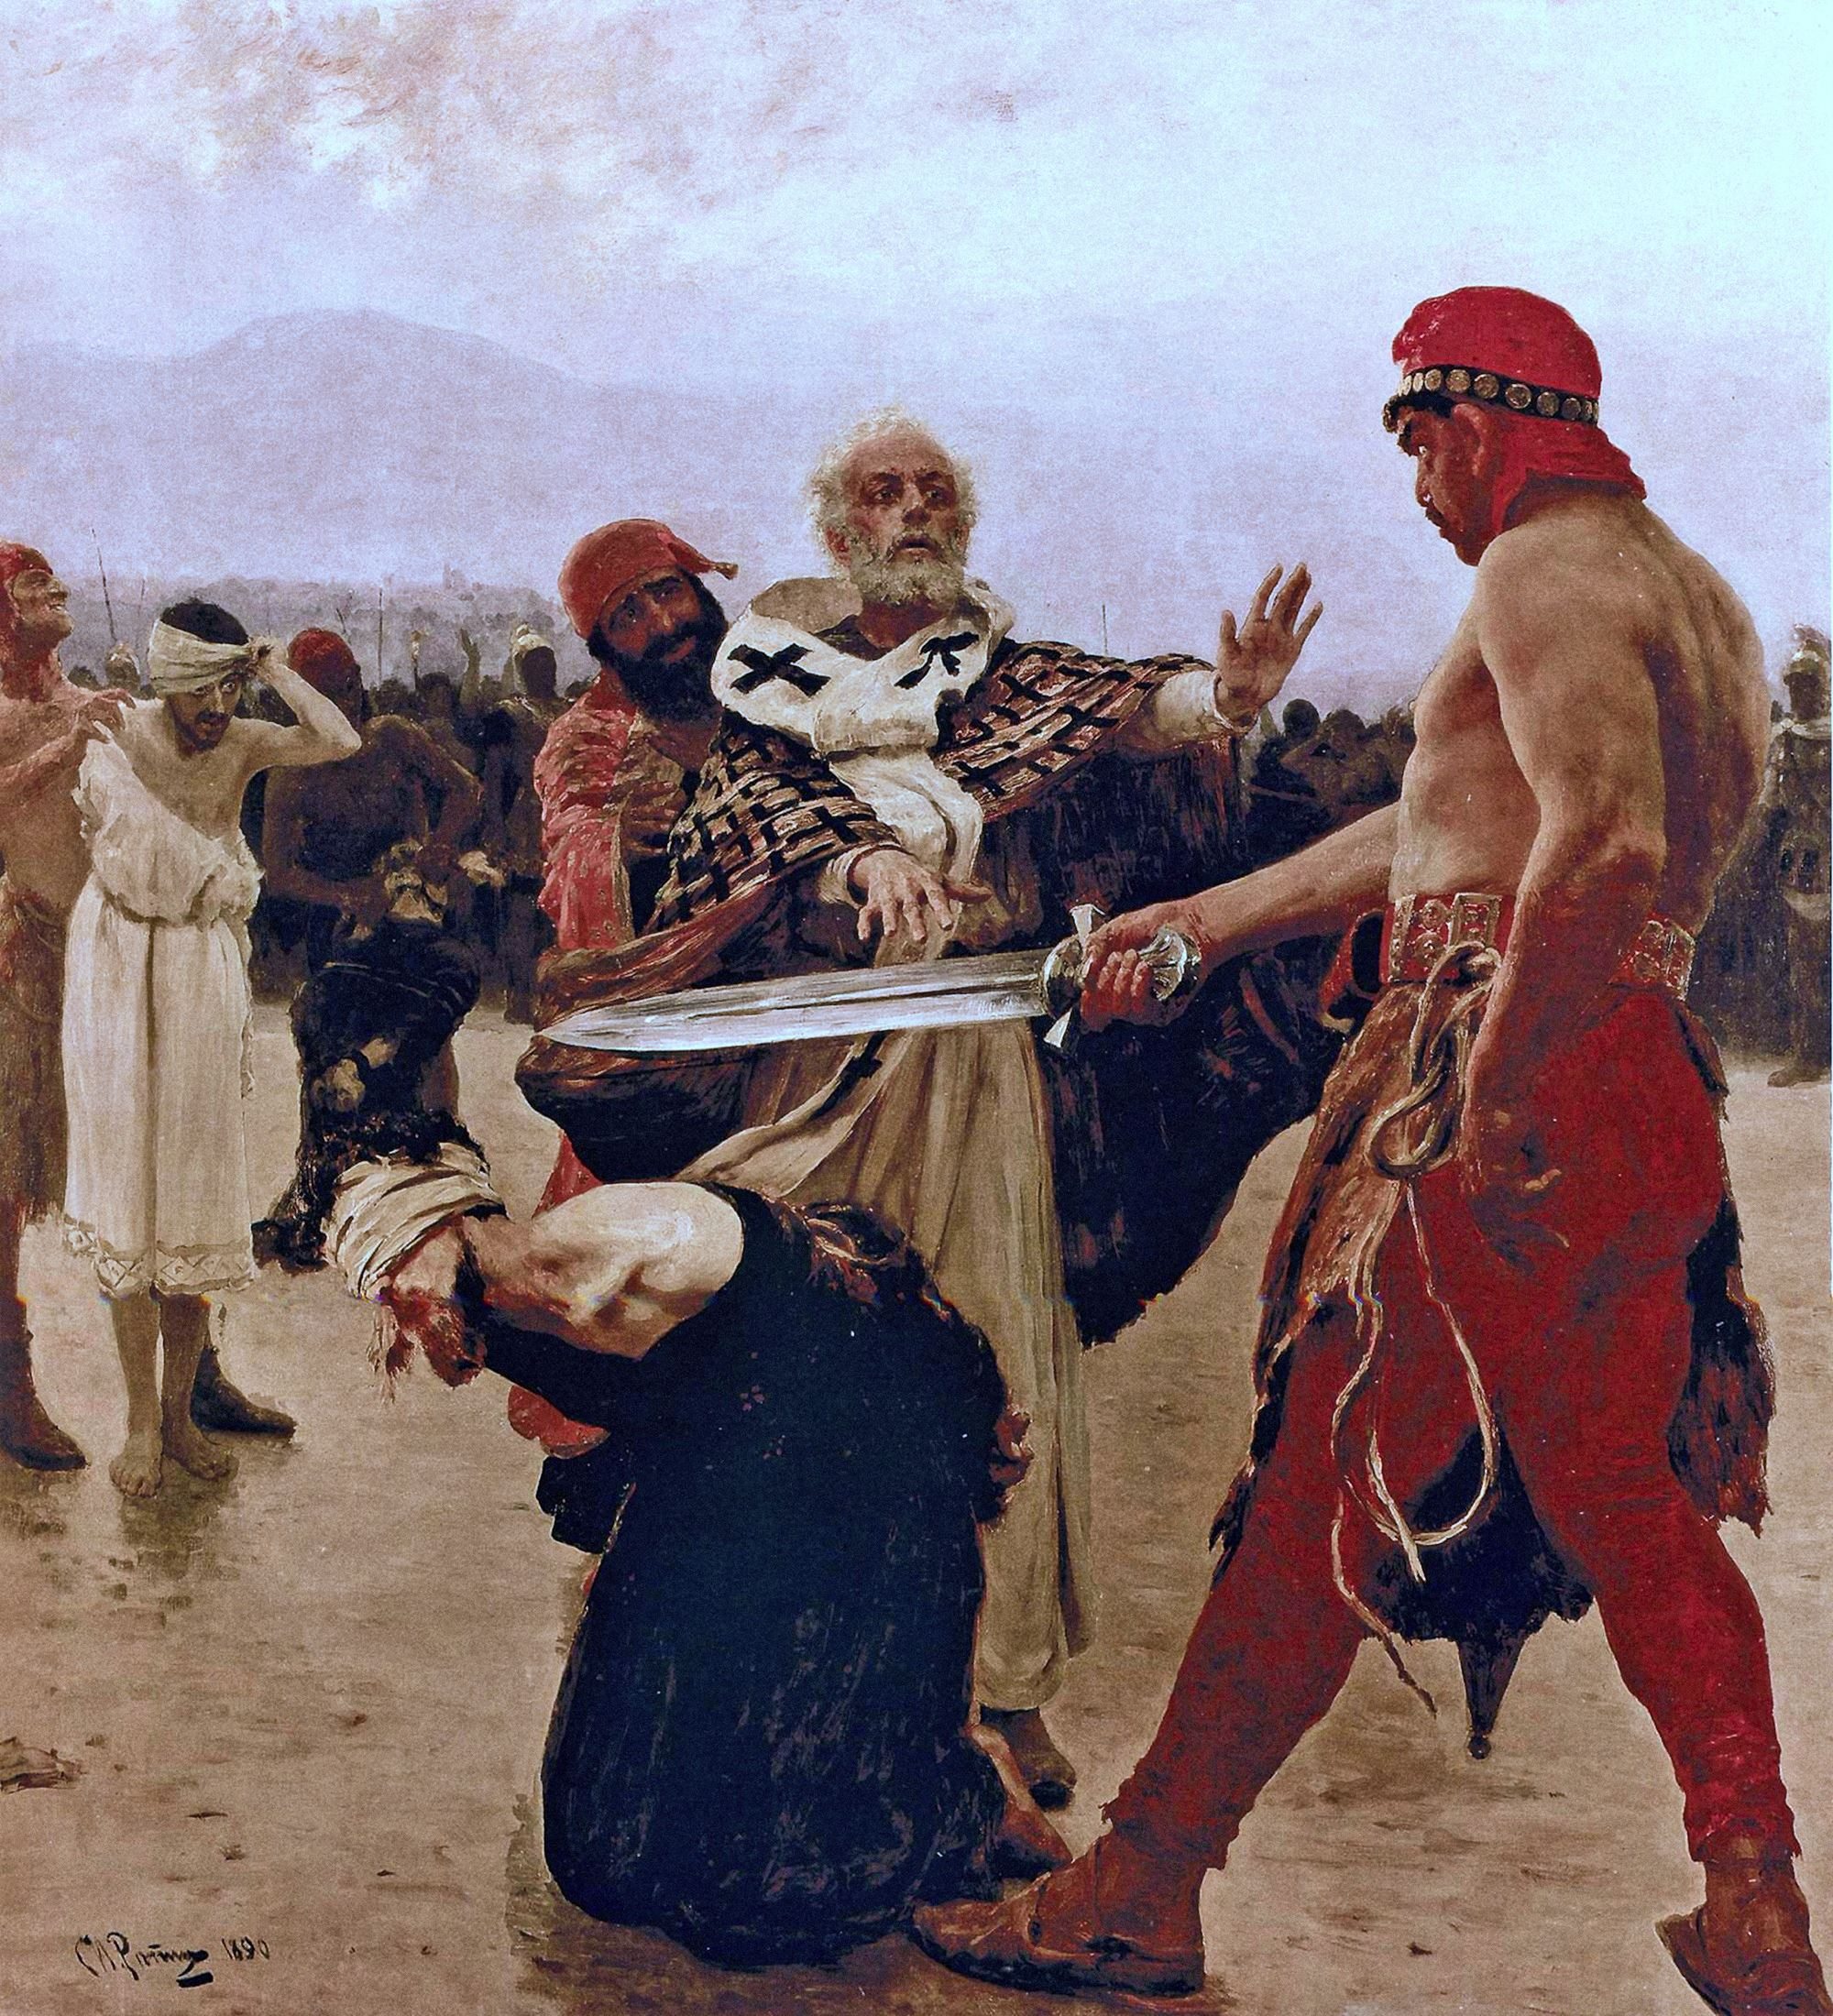 00 Ilya Repin. St Nicholas Halts the Execution. 1890.